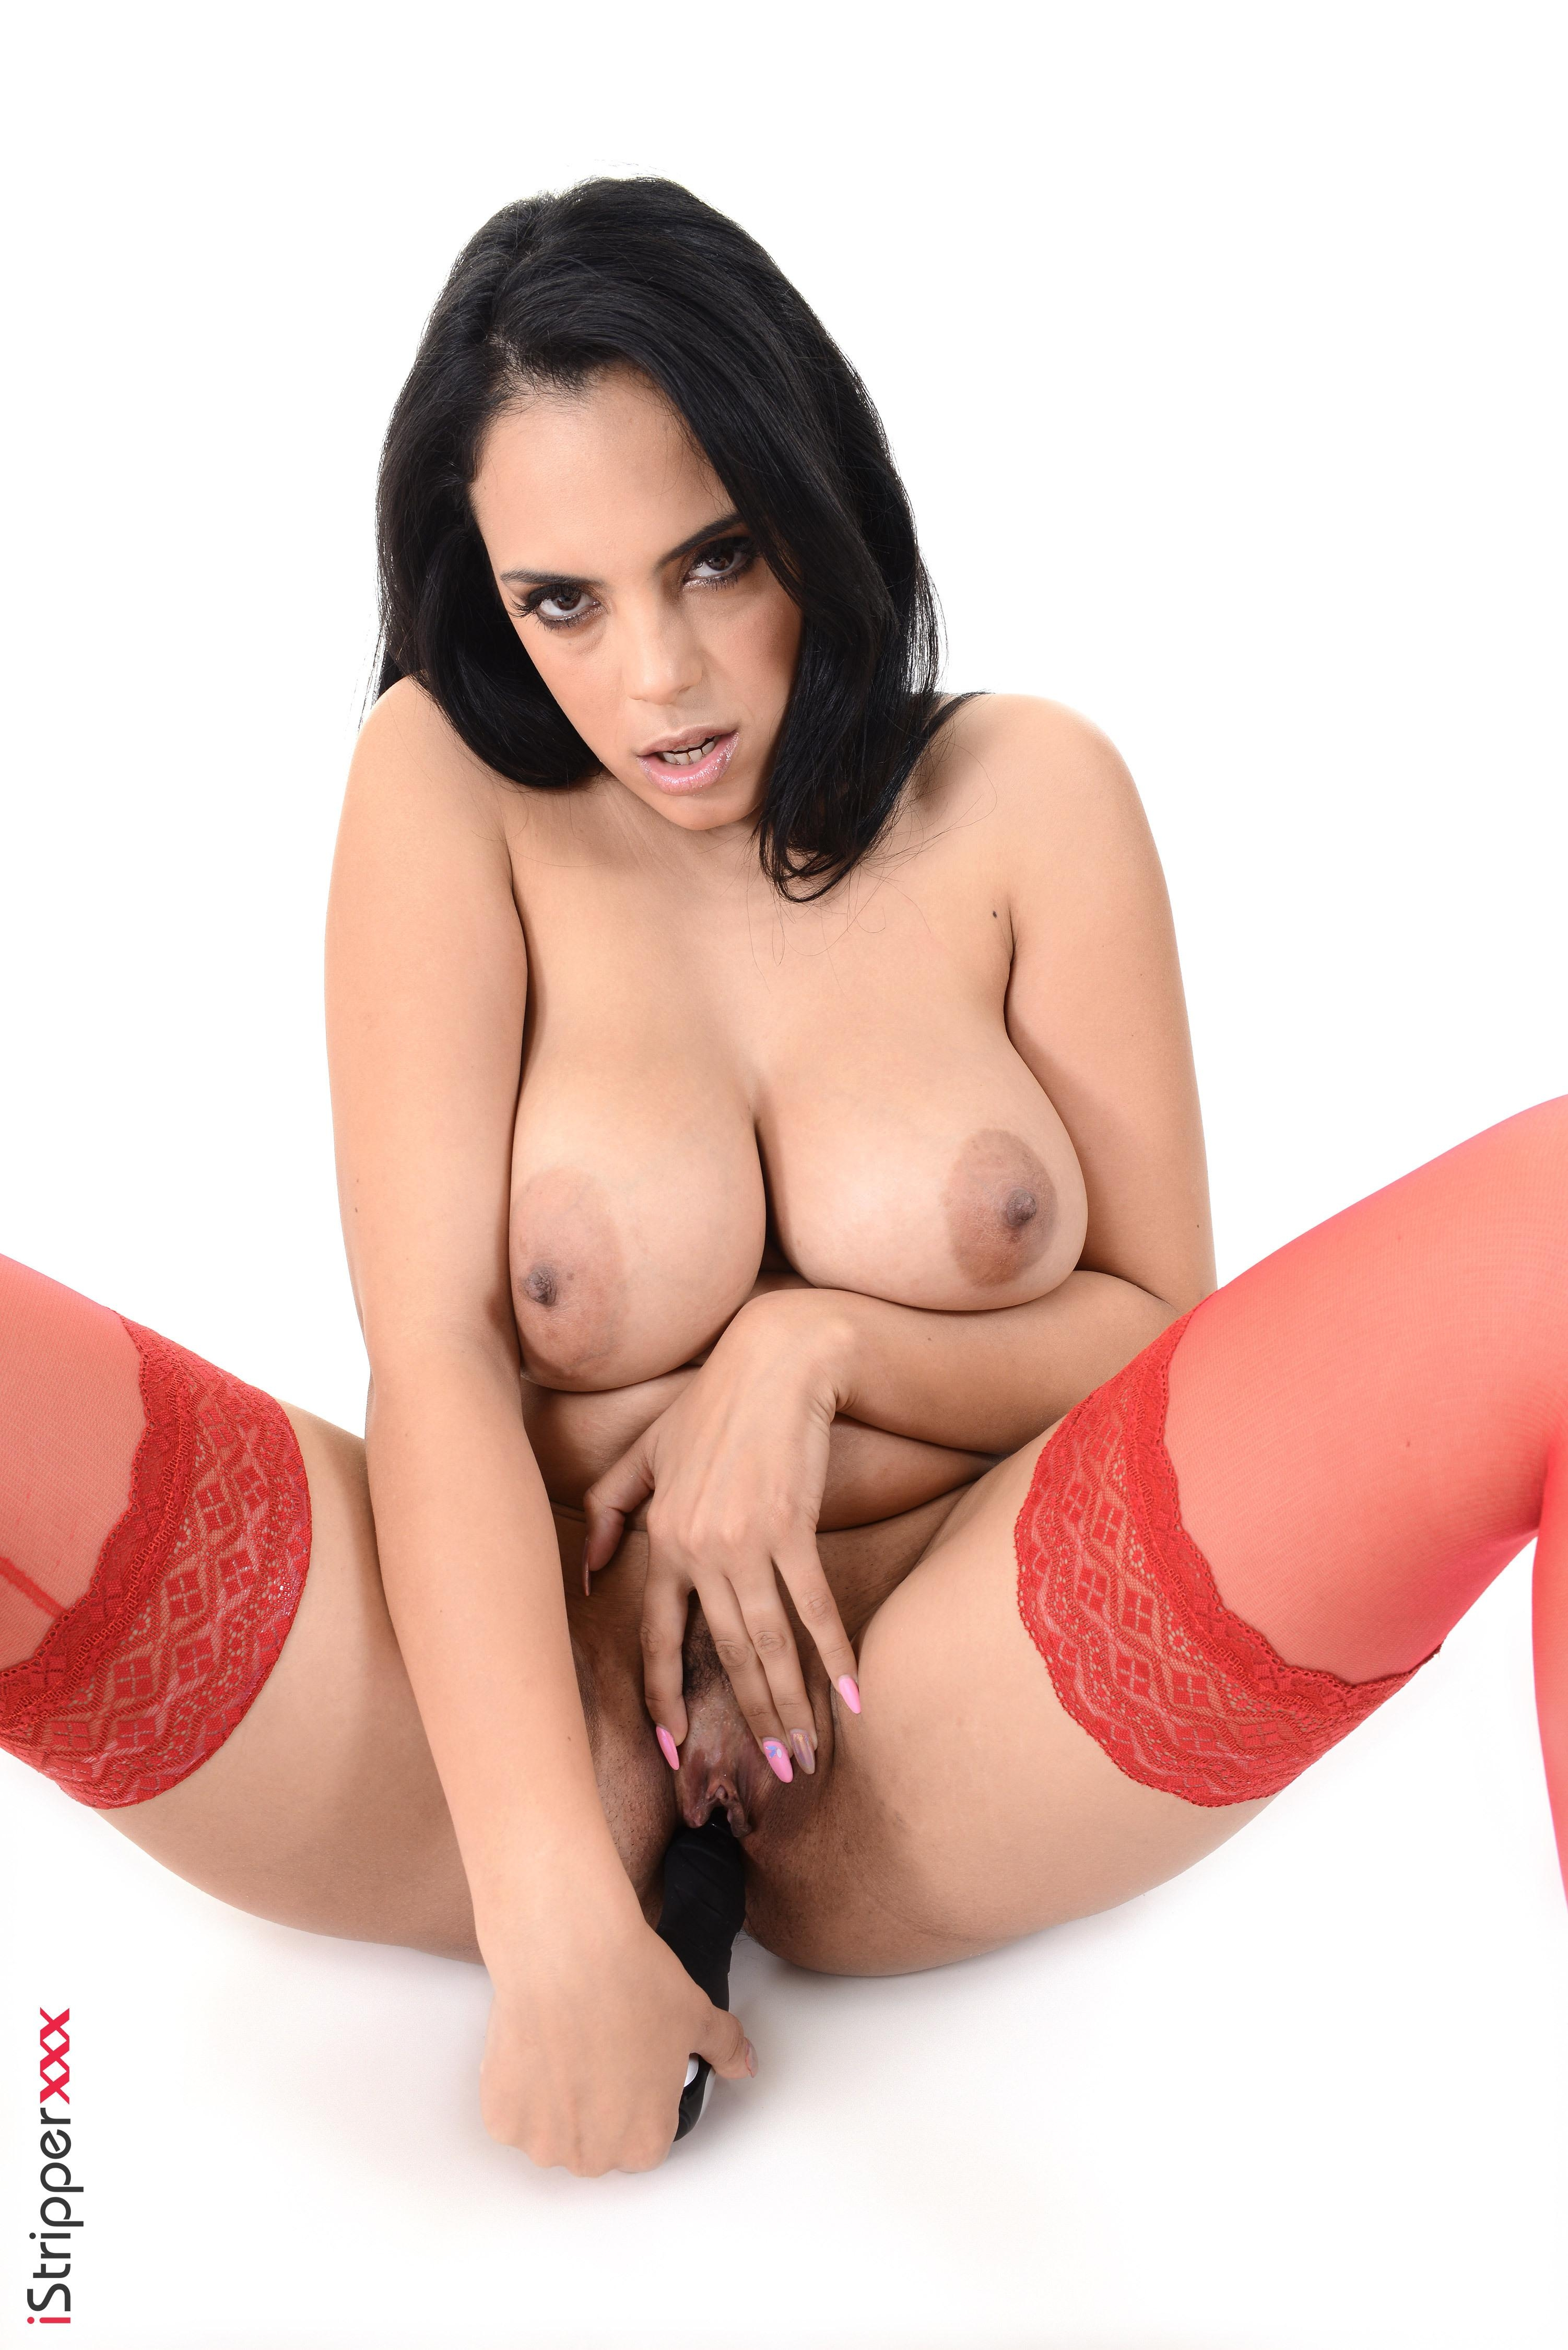 Dark haired solo model Katrina Moreno expose her hooters attired in red nylons